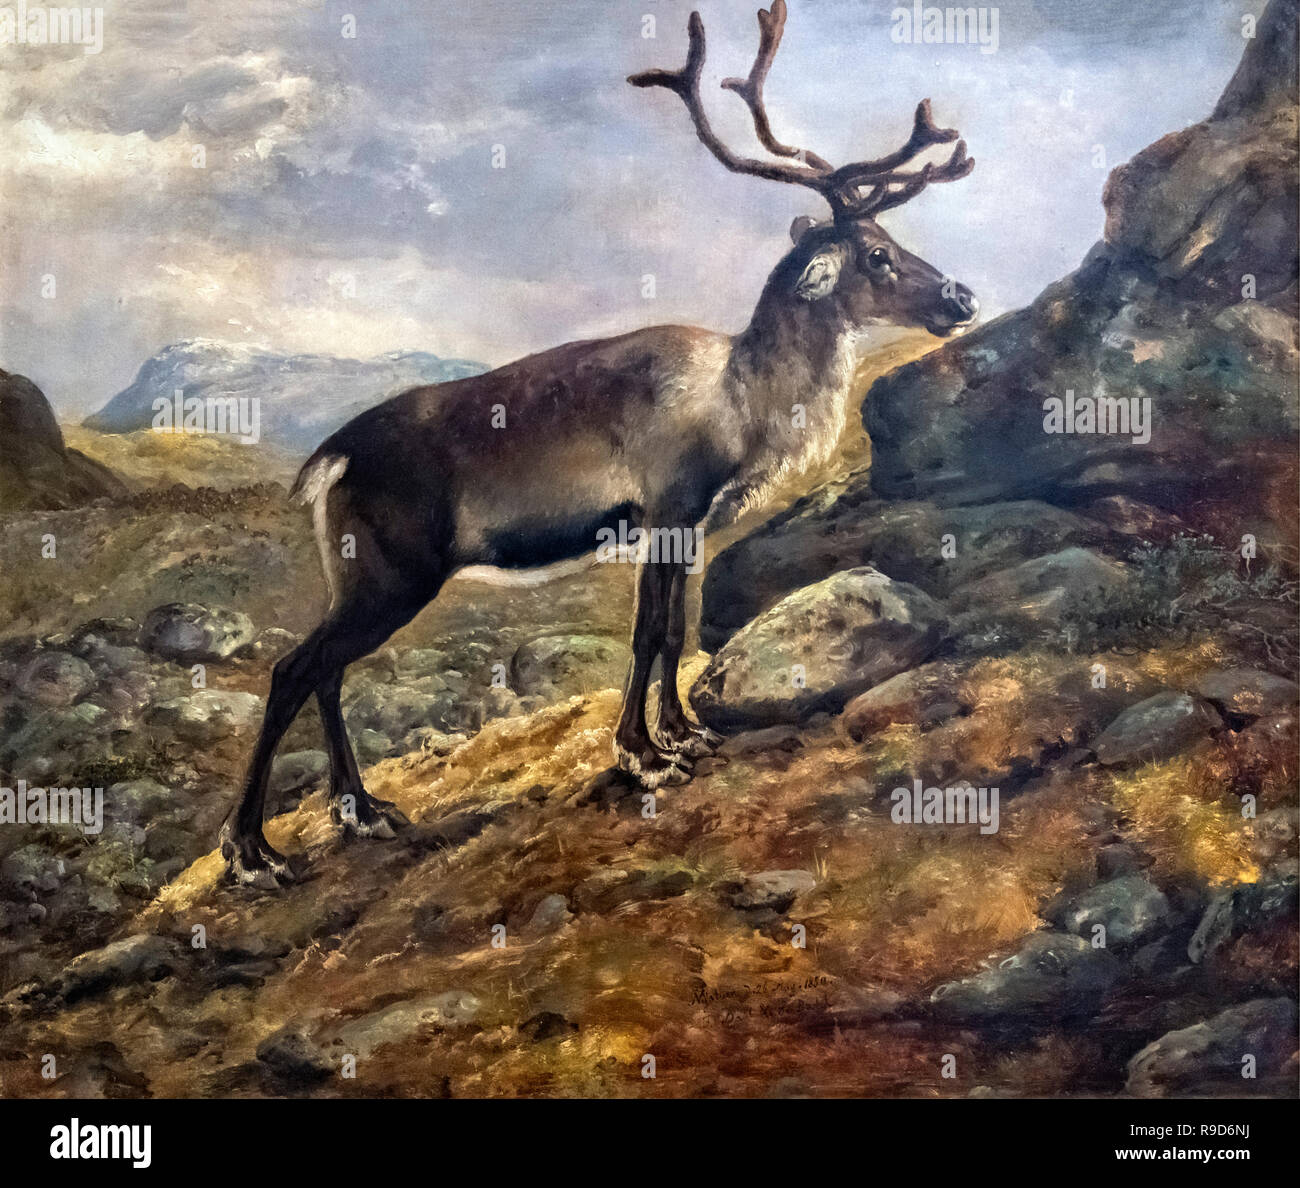 Study of a Reindeer by J C Dahl (Johan Christian Claussen Dahl: 1788-1857), oil on canvas, 1850 - Stock Image